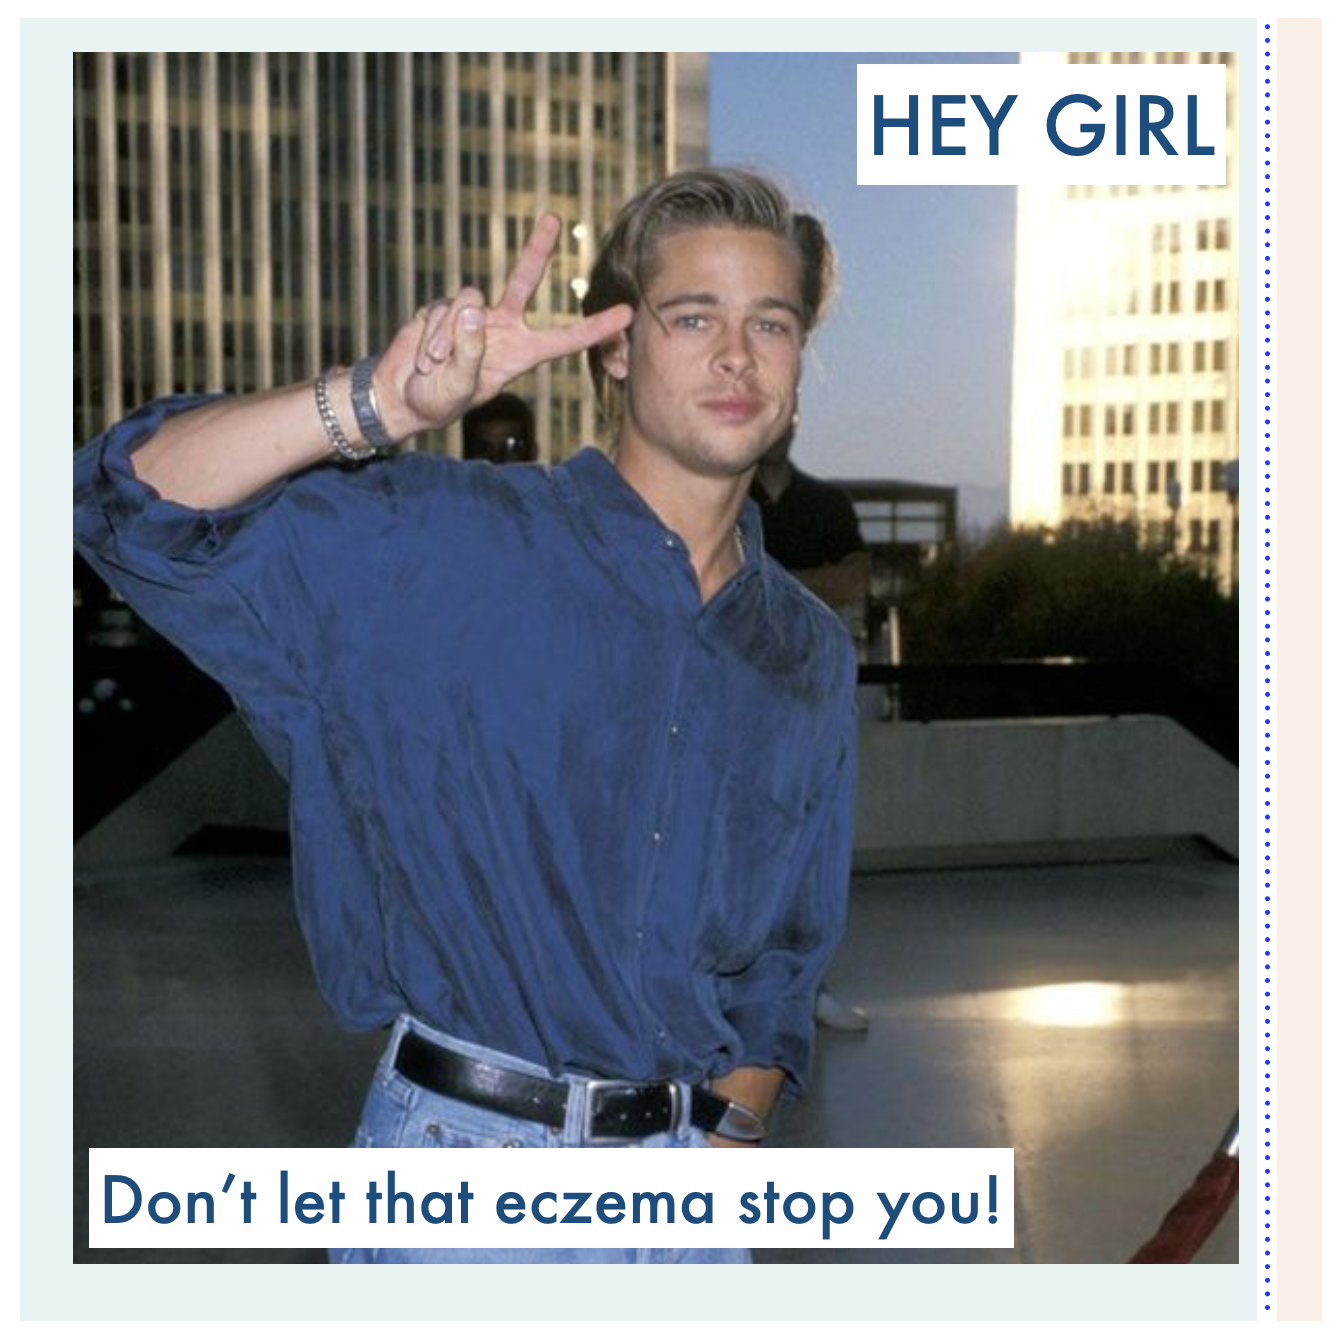 Hey girl, Don't let that Eczema Stop You!